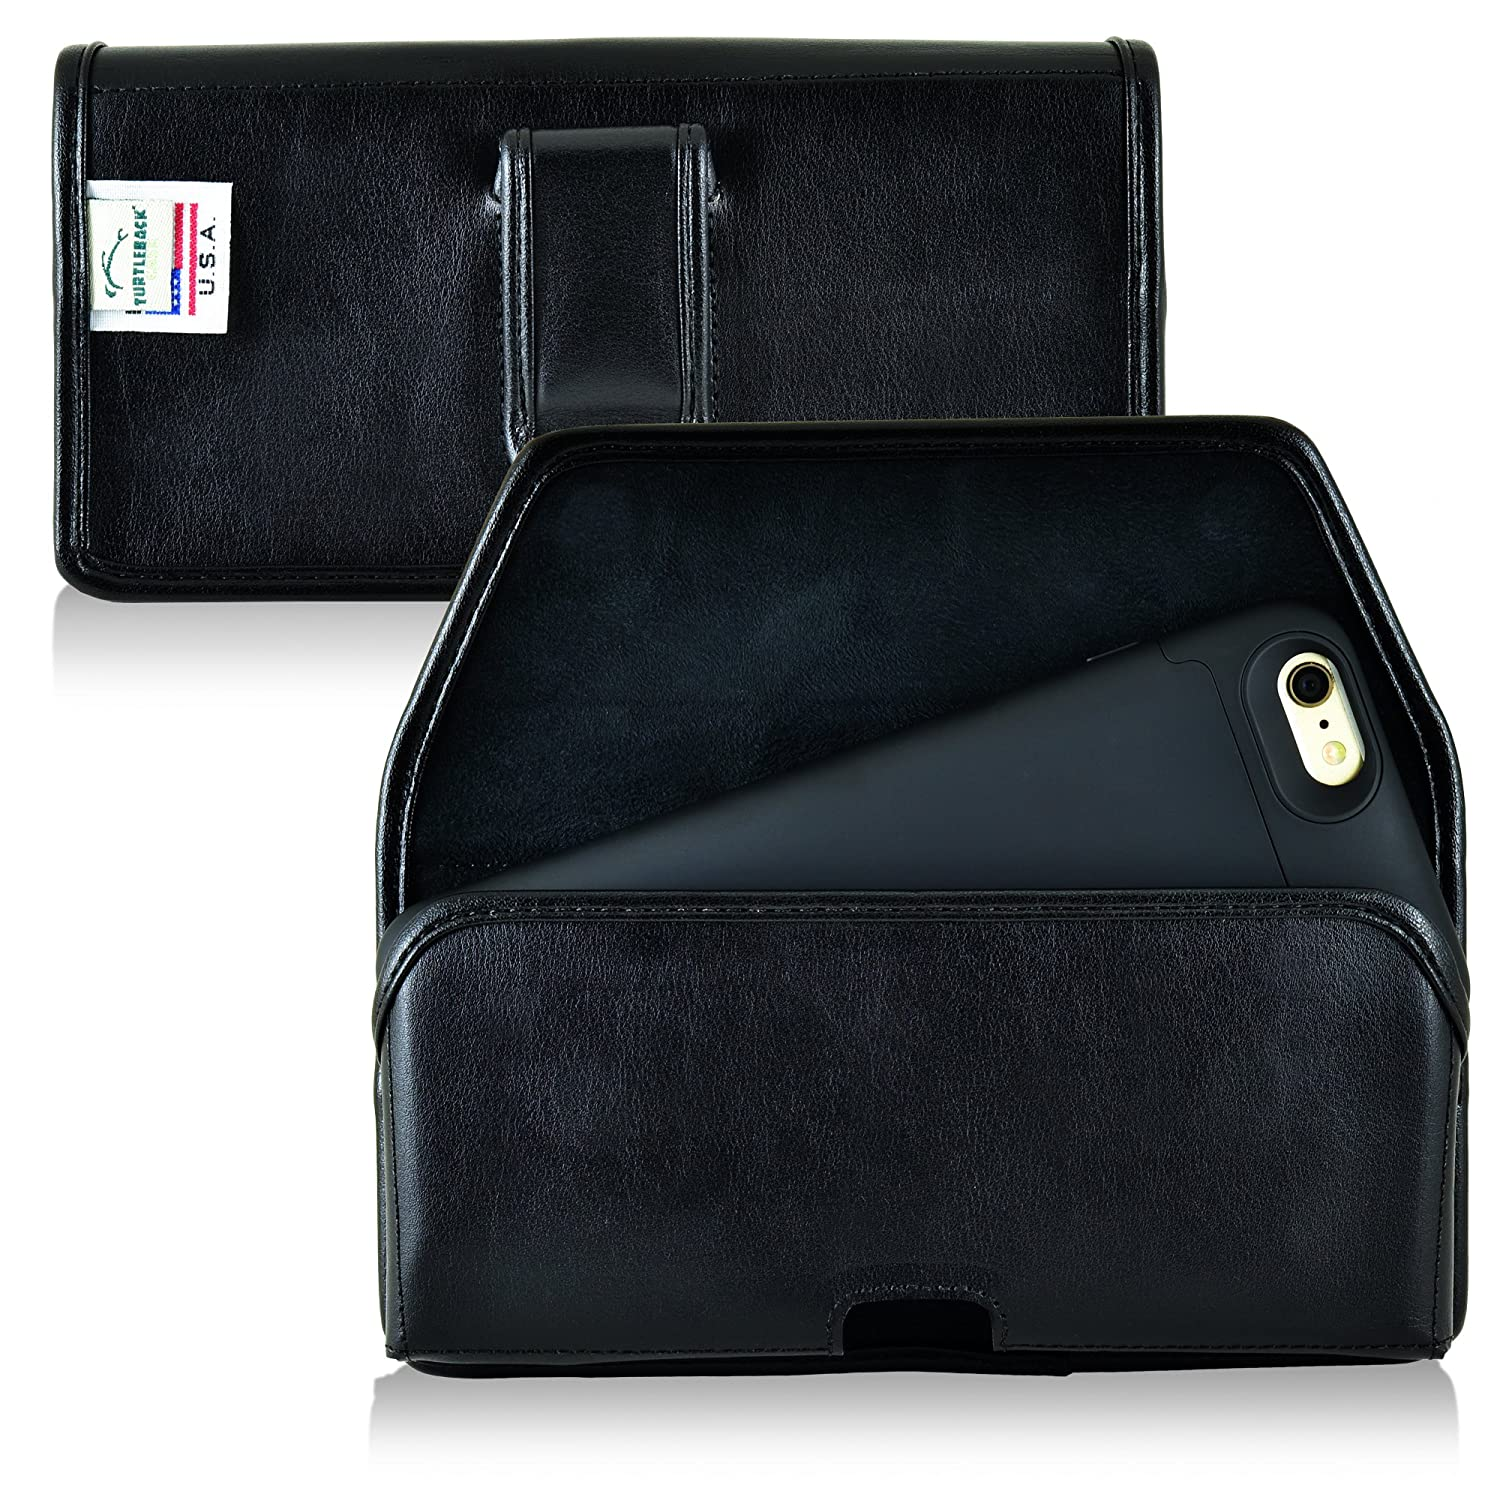 buy popular fbd89 08678 Mophie Juice Pack iPhone 6S+ Plus Holster Turtleback Juice Pack Air Space  iPhone 6S+ Plus Belt Case, Black Leather Pouch with Executive Belt Clip, ...